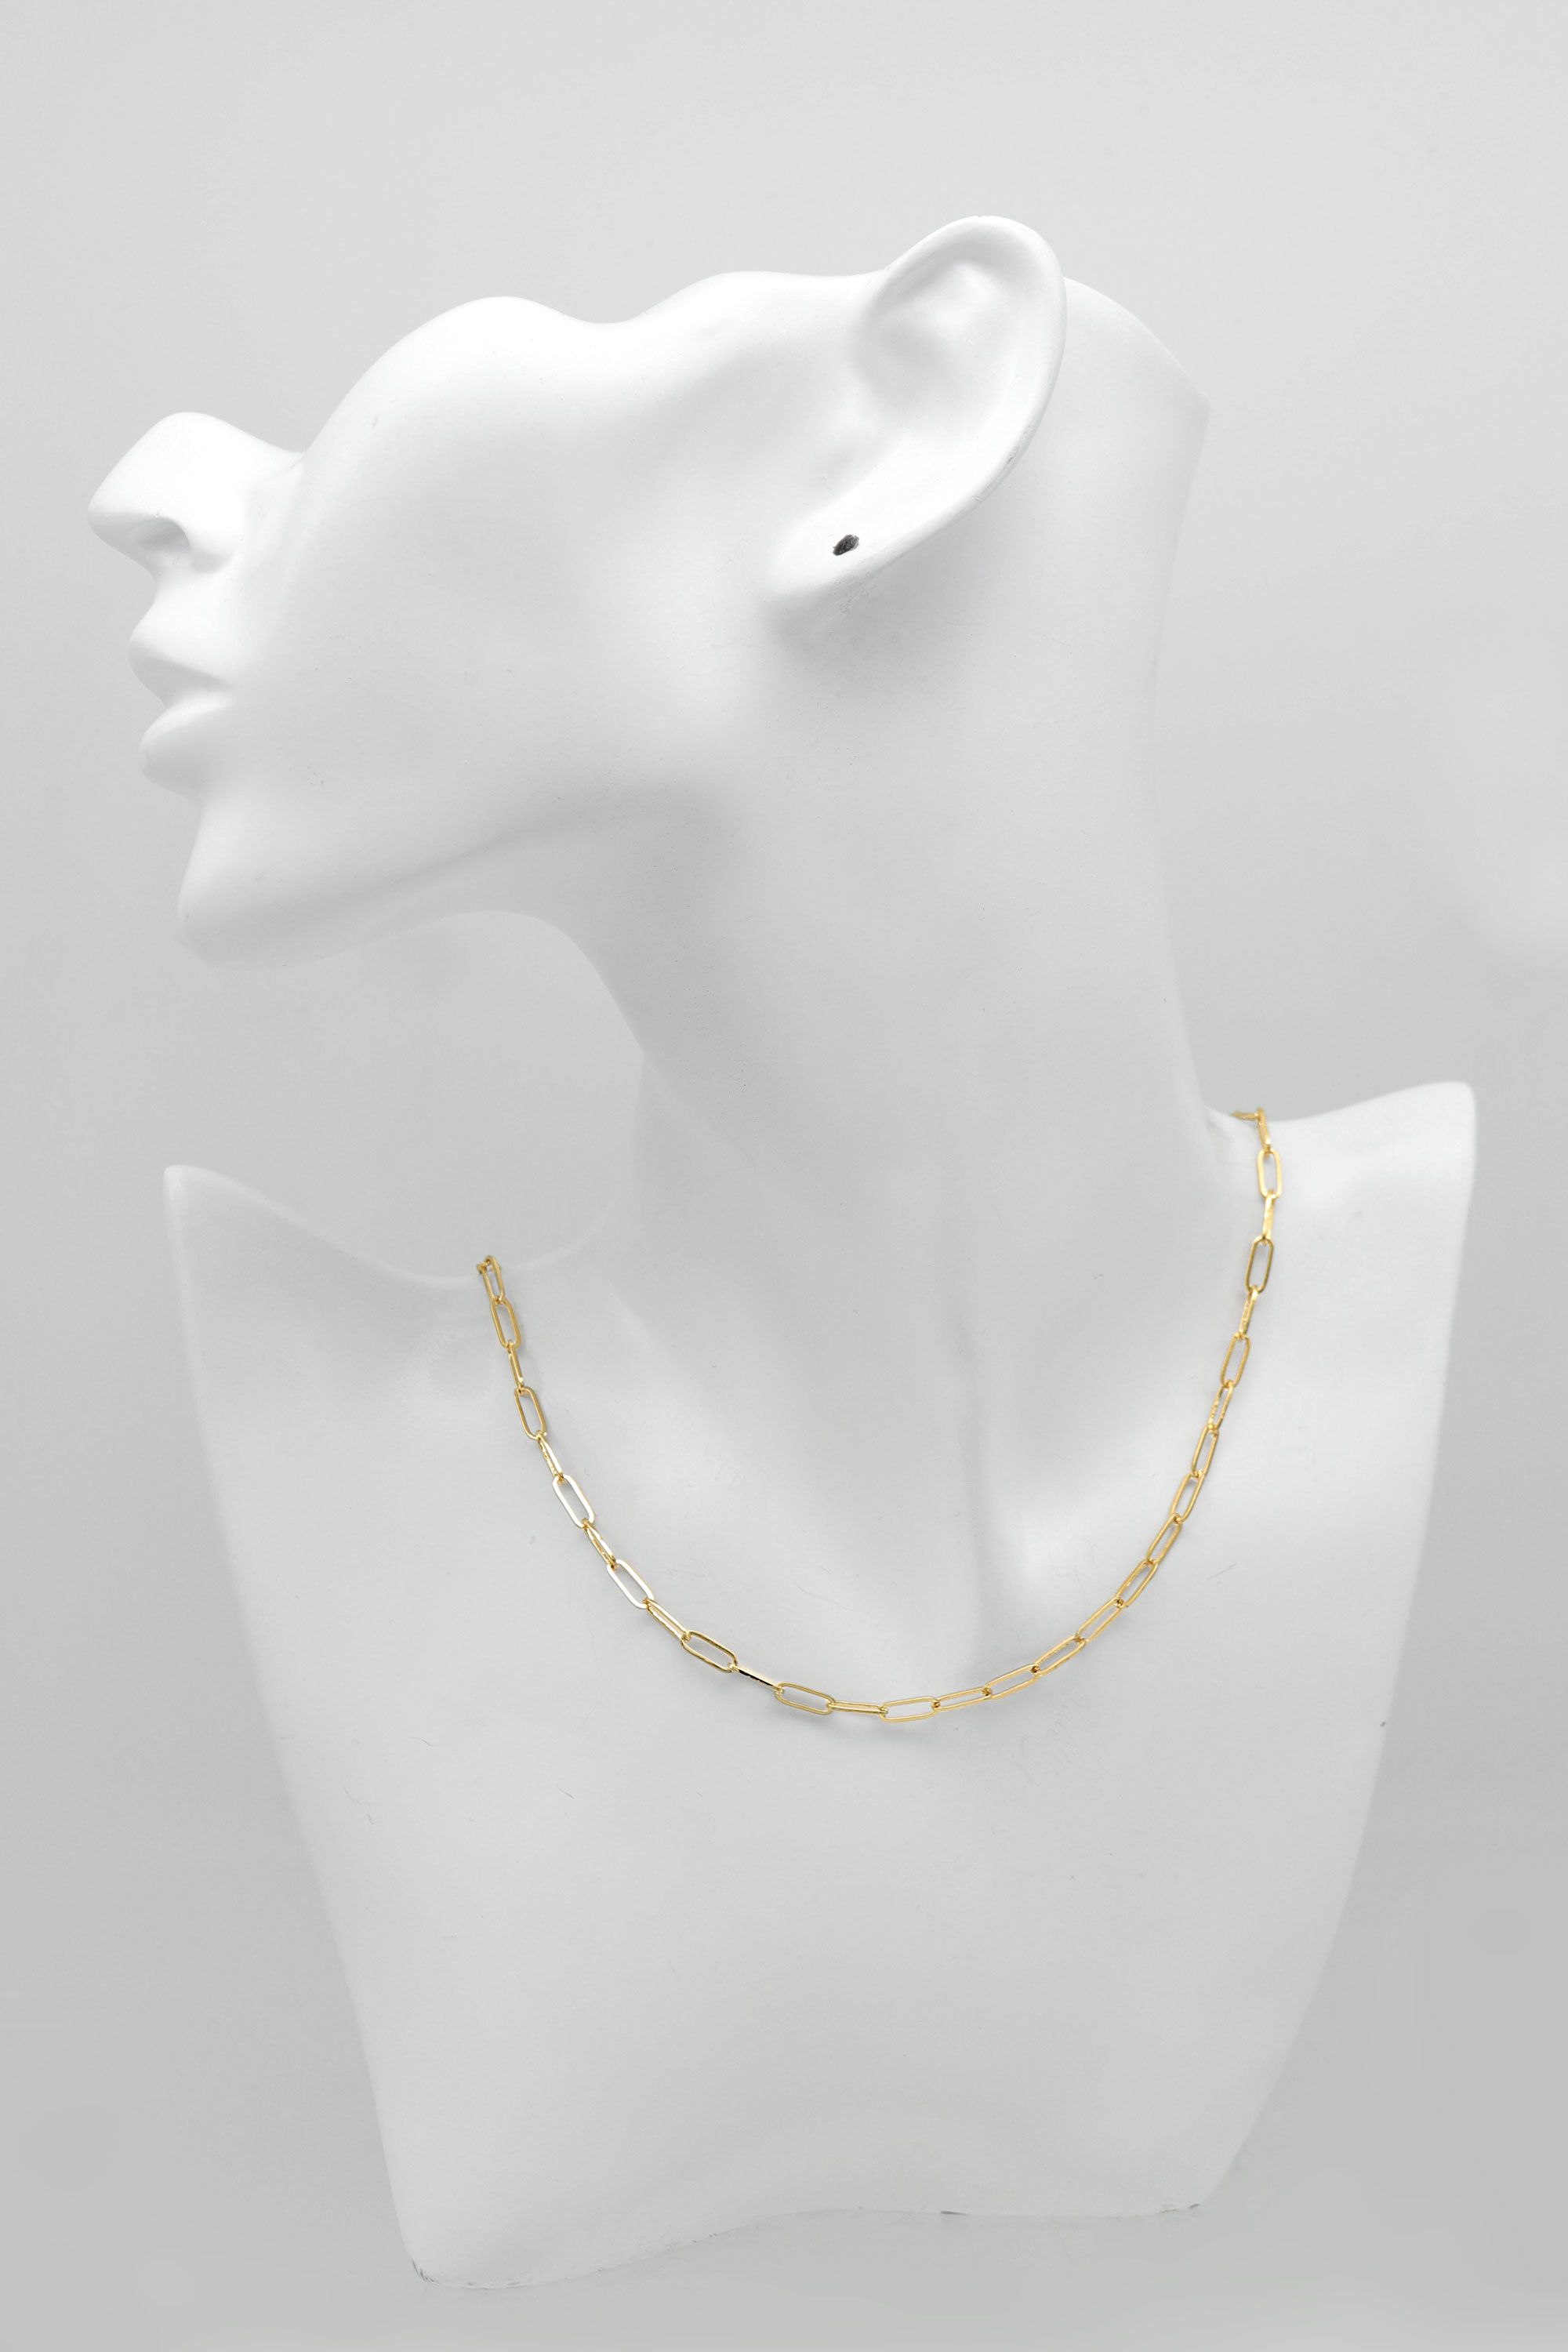 Rectangle link chain necklace for charm, N4505-G1